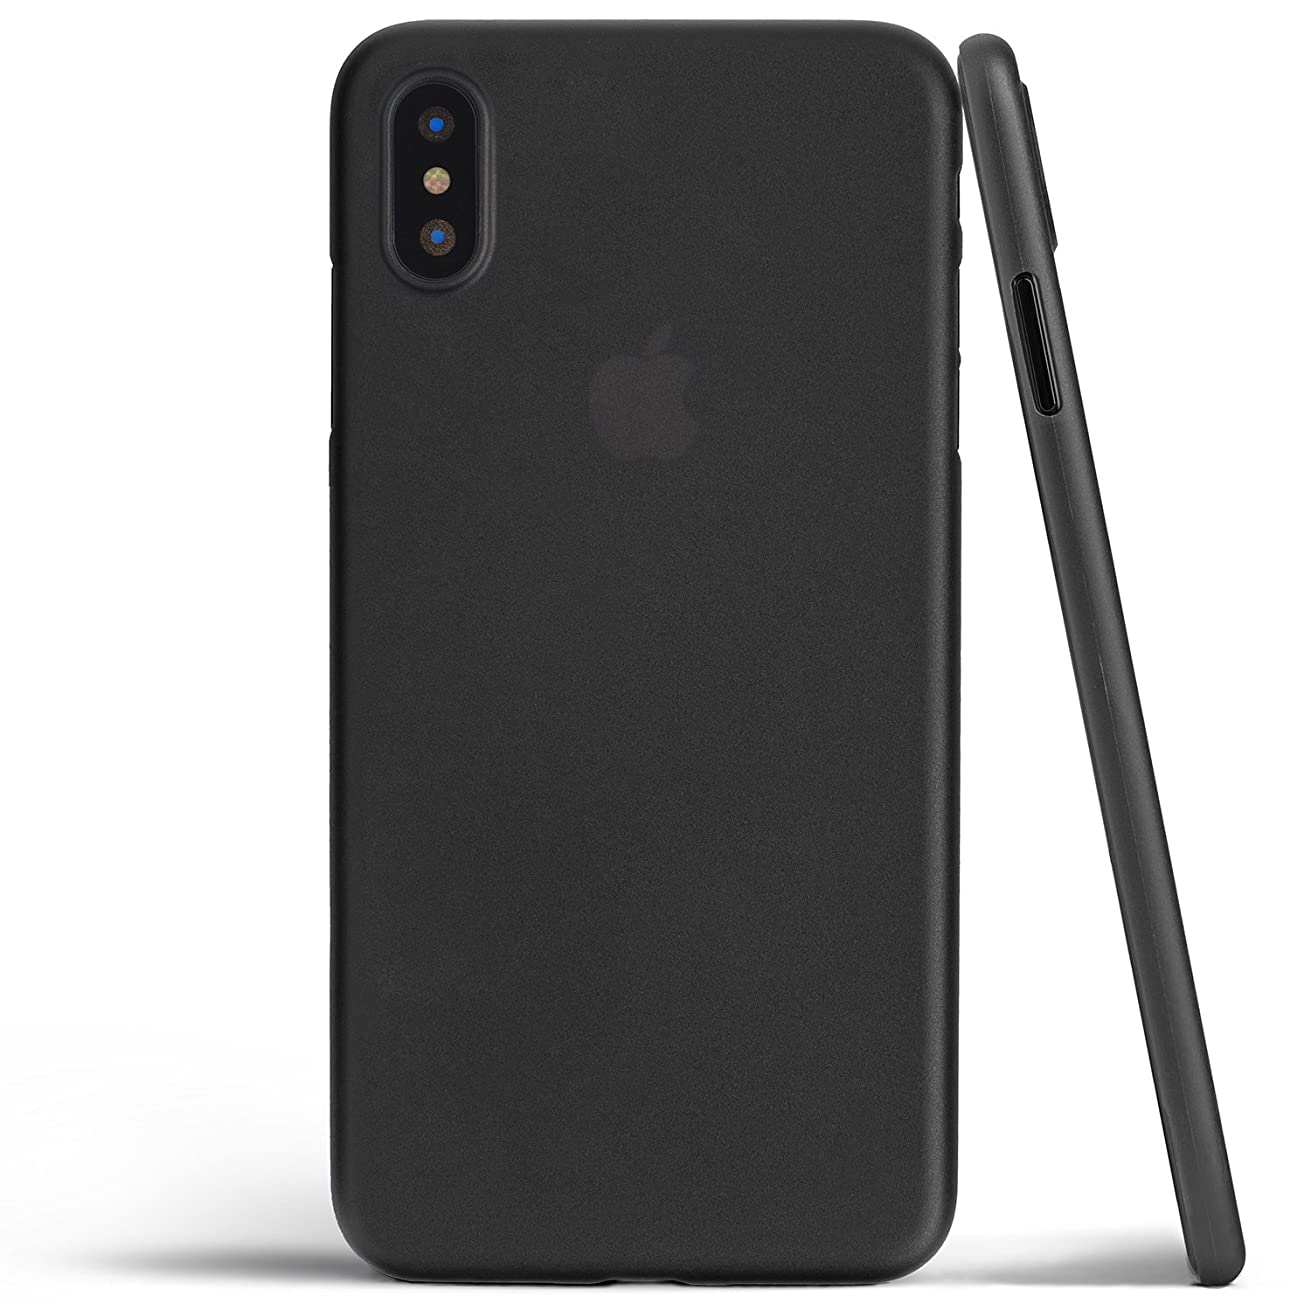 totallee iPhone X Case, Thinnest Cover Premium Ultra Thin Light Slim Minimal Anti-Scratch Protective - for Apple iPhone X (2017) (Matte Black)